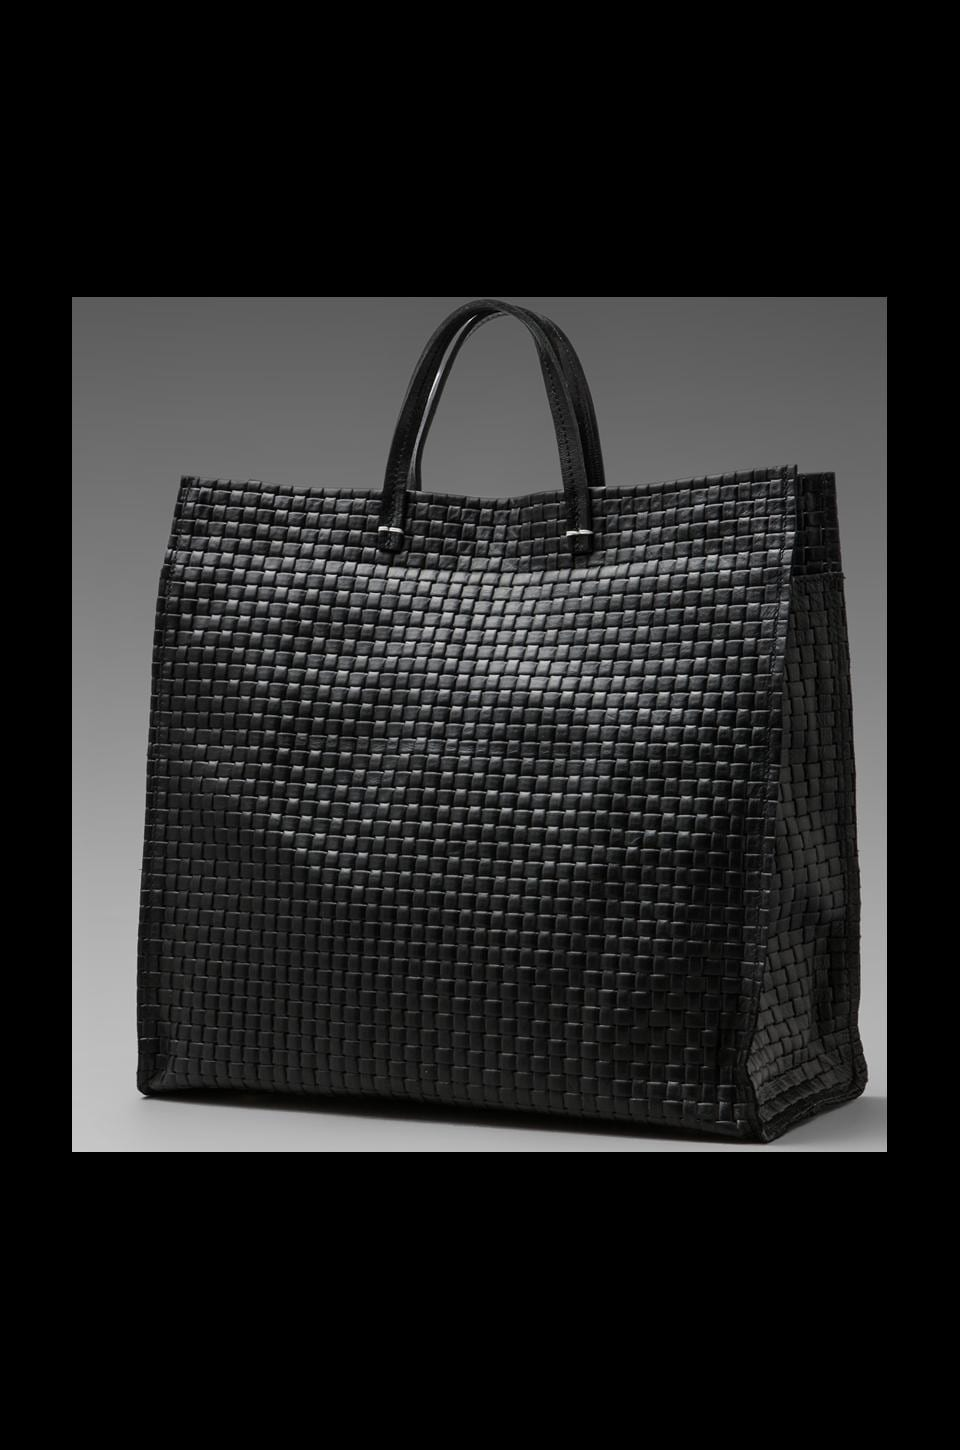 Clare V. Simple Tote in Black Basket Weave